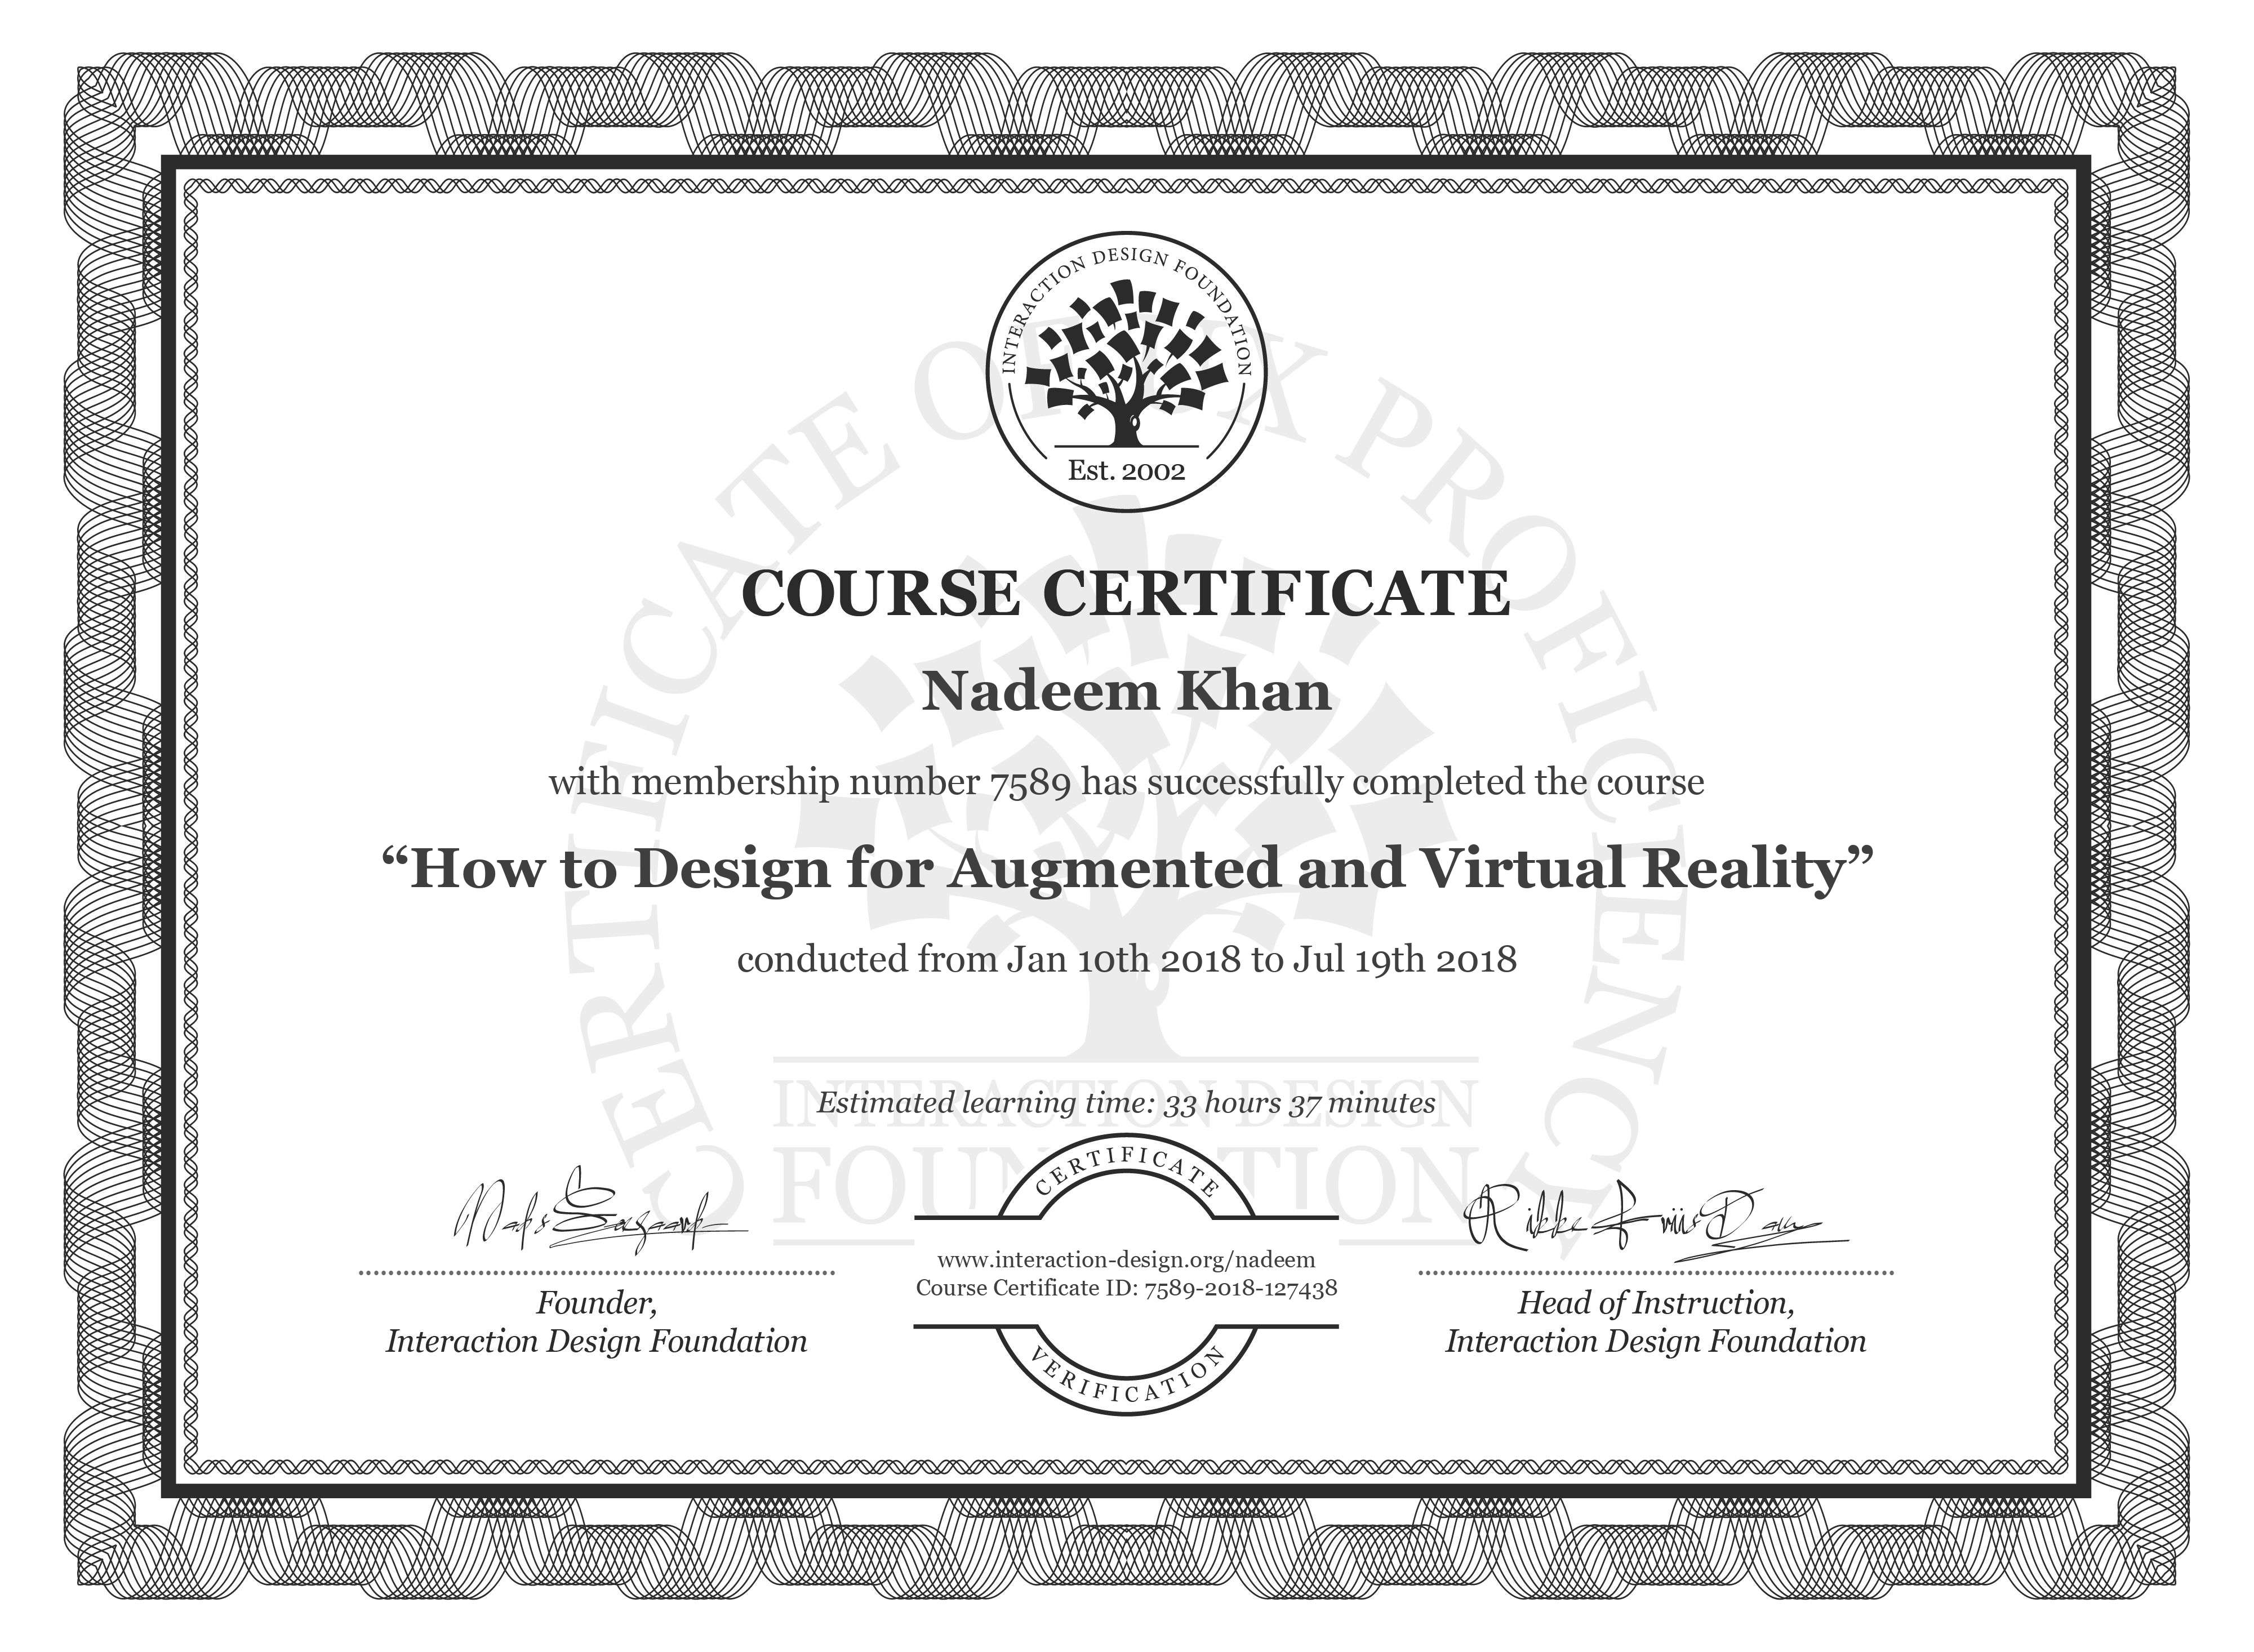 Nadeem Khan: Course Certificate - How to Design for Augmented and Virtual Reality